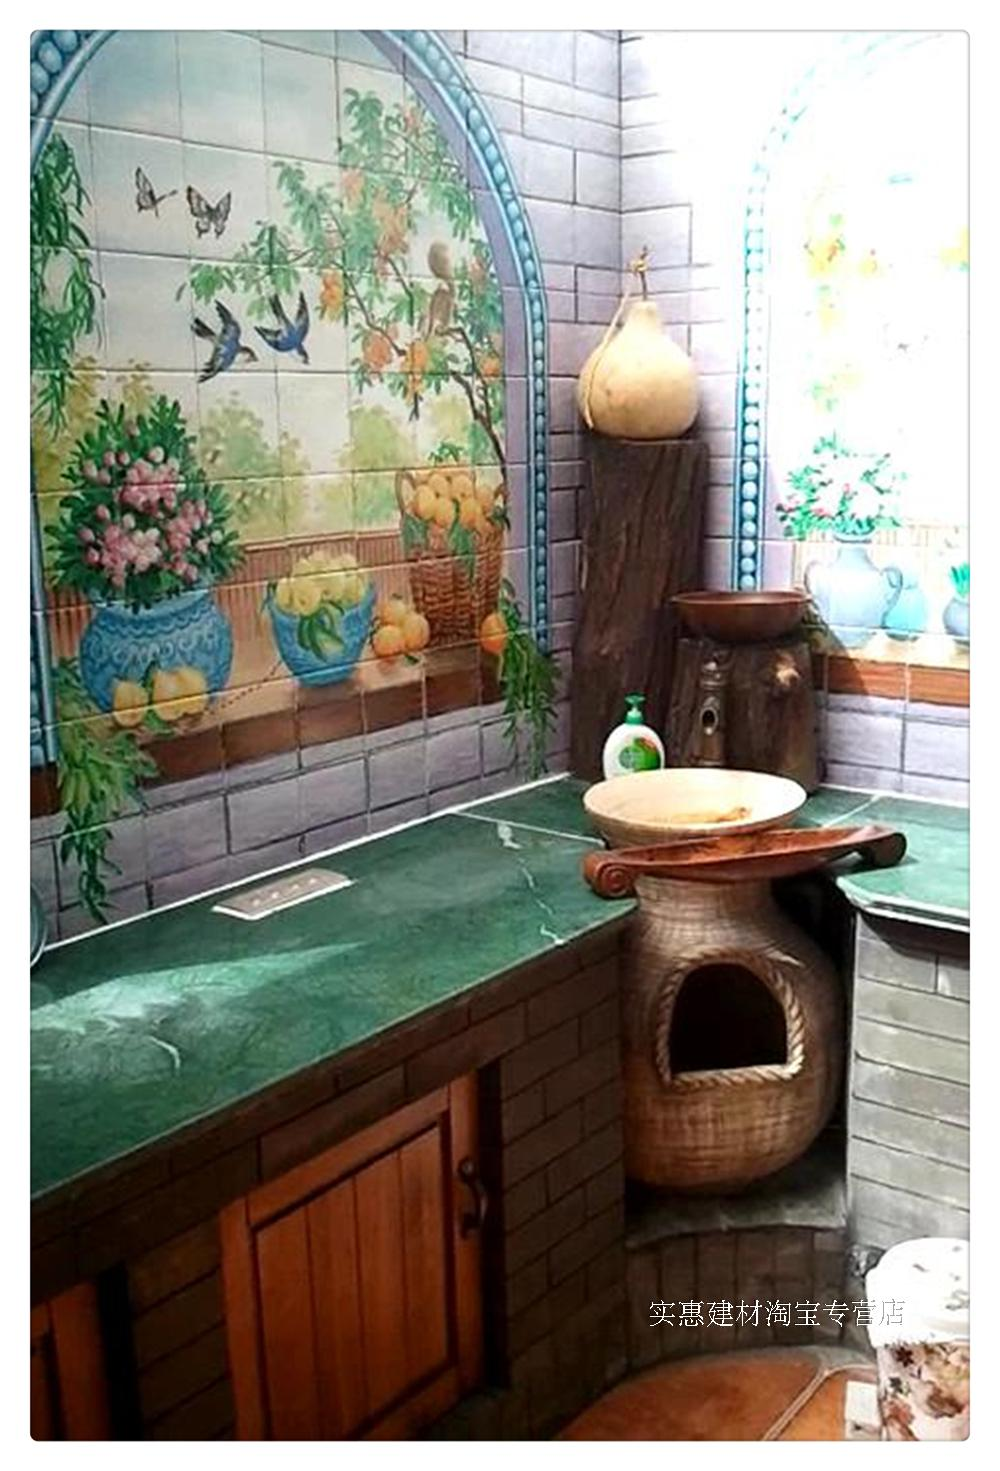 It is recommended that Foshan factory hand painted retro pastoral oil painting plant ceramic tile window sill kitchen bath room wall brick